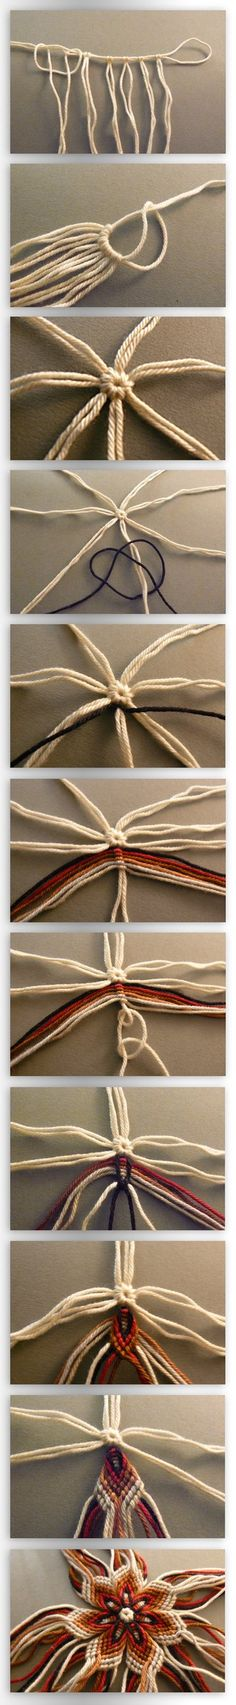 Pouch Tutorial Part I (Bottom) by ~nimuae on deviantART. You need to create an account to see the tutorial.